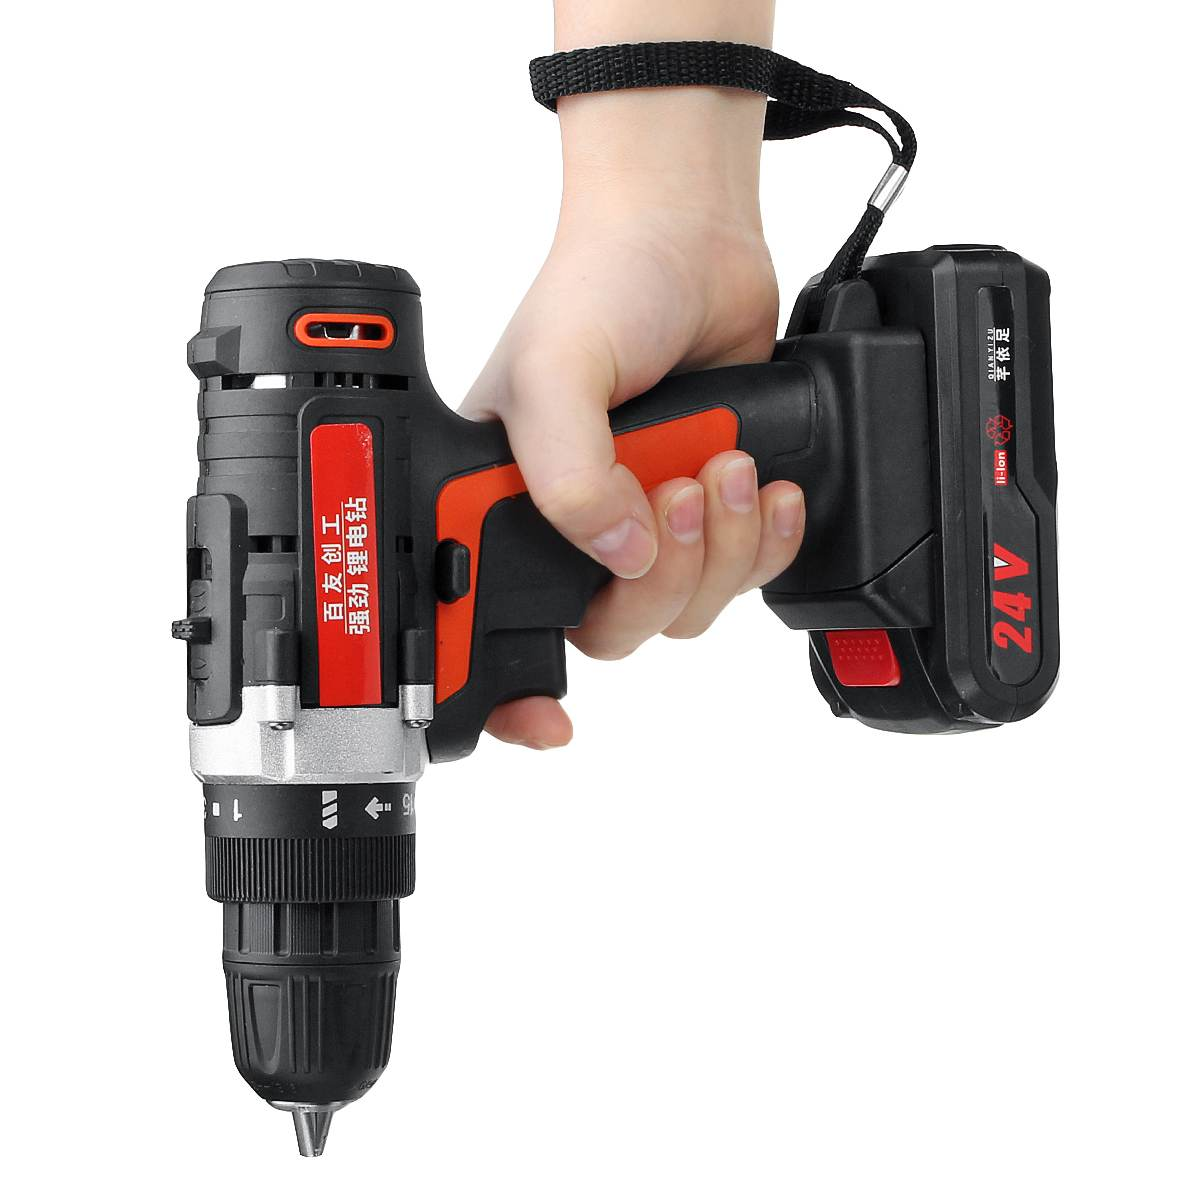 12V/24V Electric Wrench 400Nm Lithium-Ion Cordless Drill Impact Wrench Rechargeable Battery Socket Adapters Set High Torque Tool